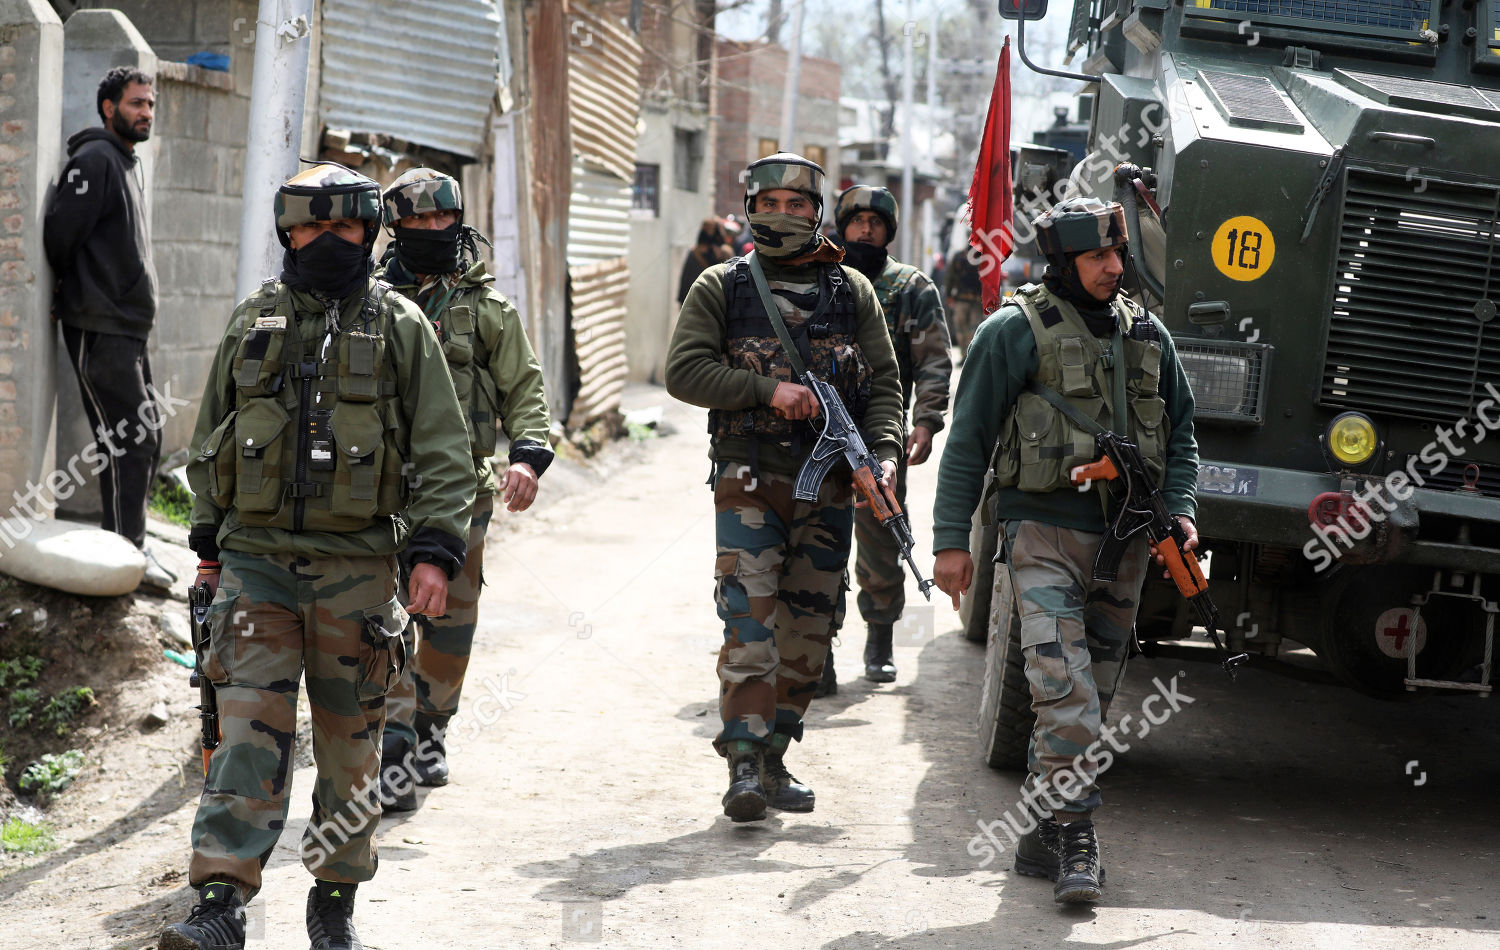 two-militants-killed-in-kashmir-khanmoh-india-shutterstock-editorial-9465470a.jpg